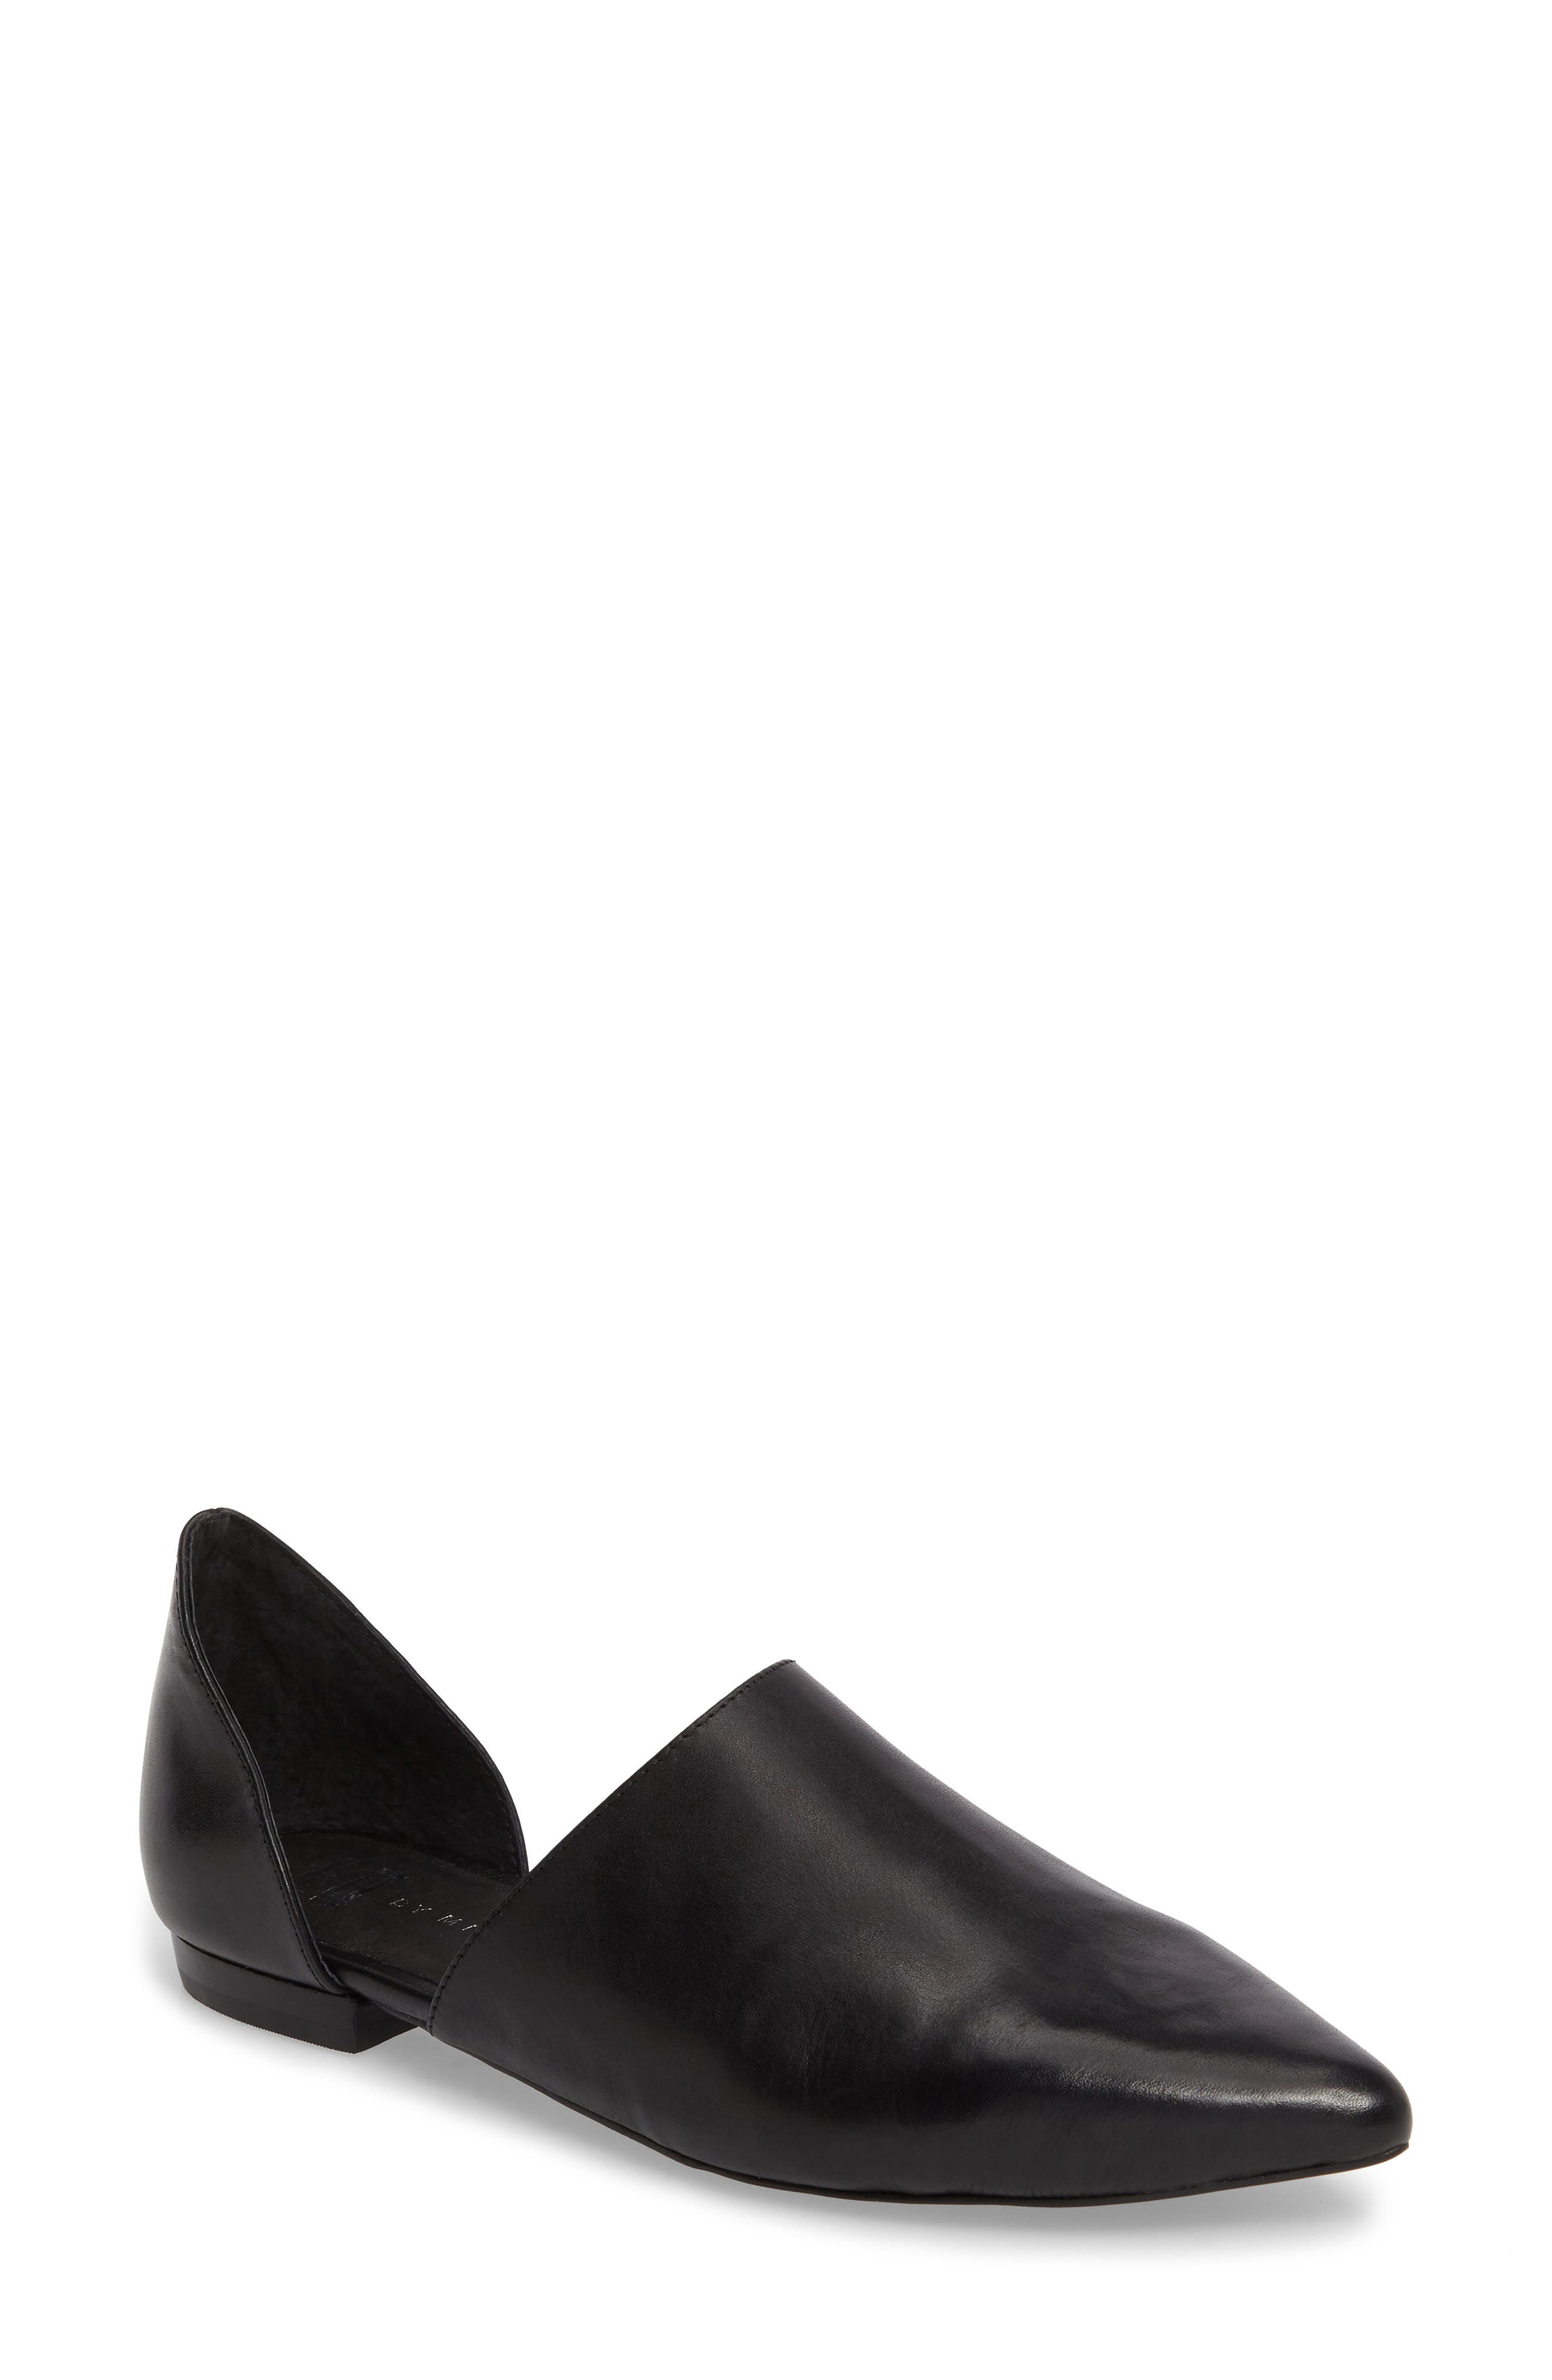 Danny d'Orsay Flat,                             Main thumbnail 1, color,                             BLACK/ BLACK LEATHER